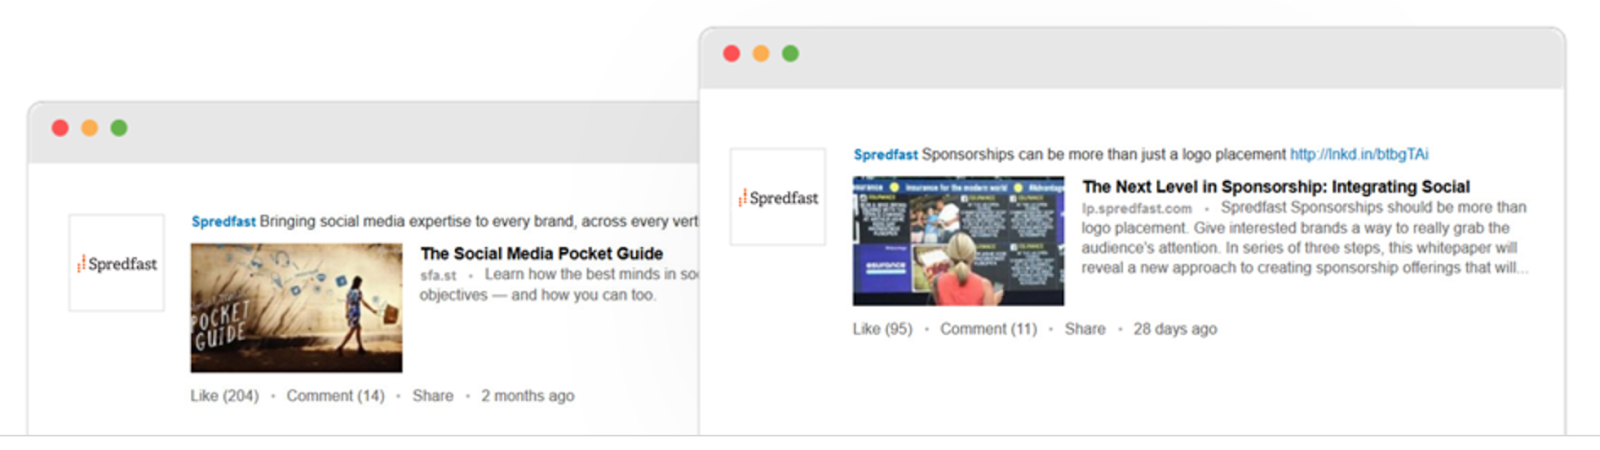 Spredfast found success with a LinkedIn Sponsored Content Campaign